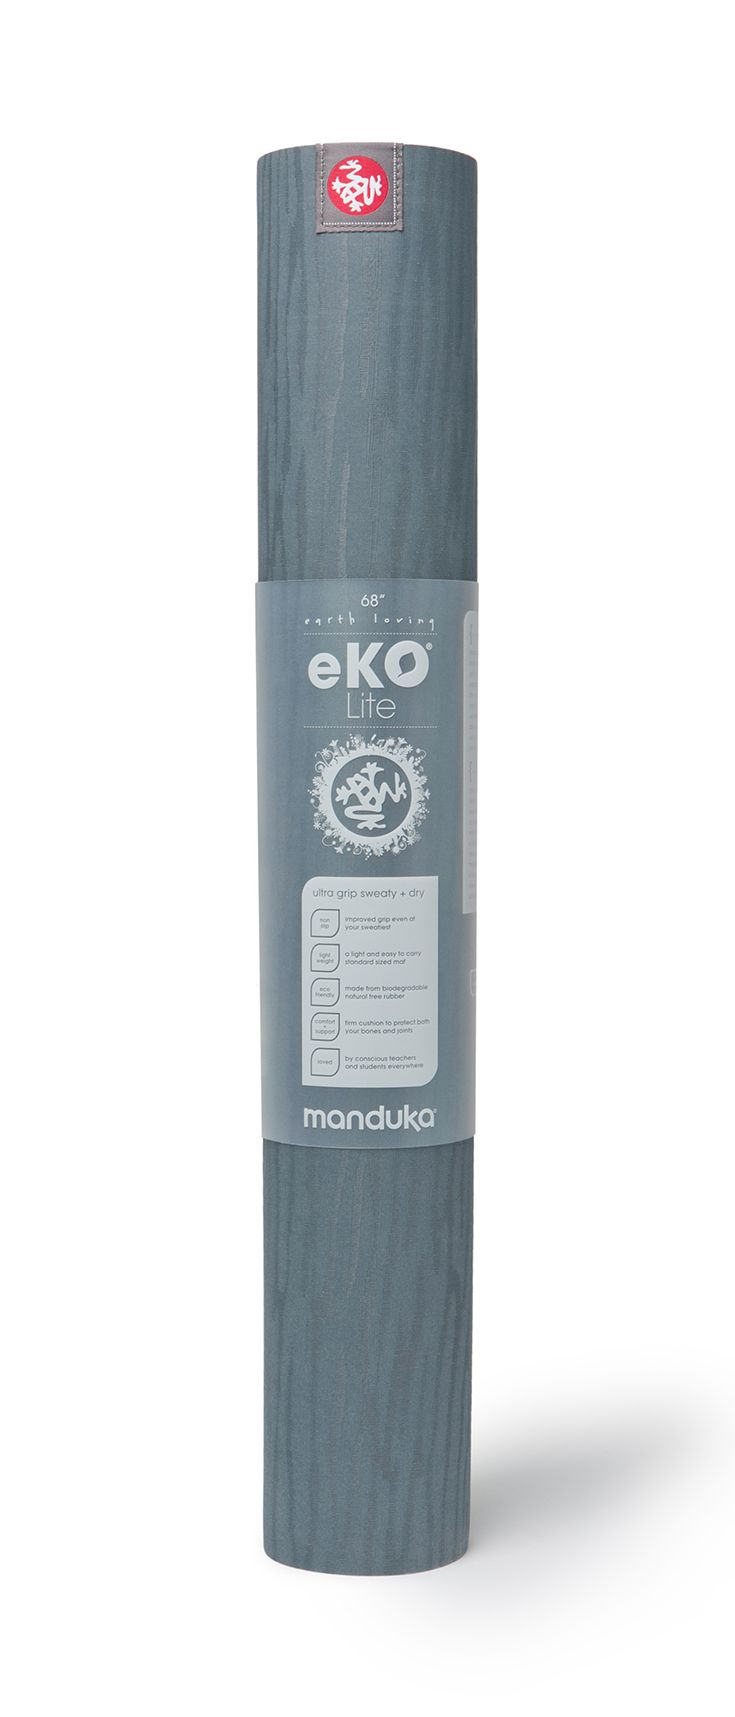 eKOlite Mat in Thunder - provides cushion and support for your practice while protecting the planet.